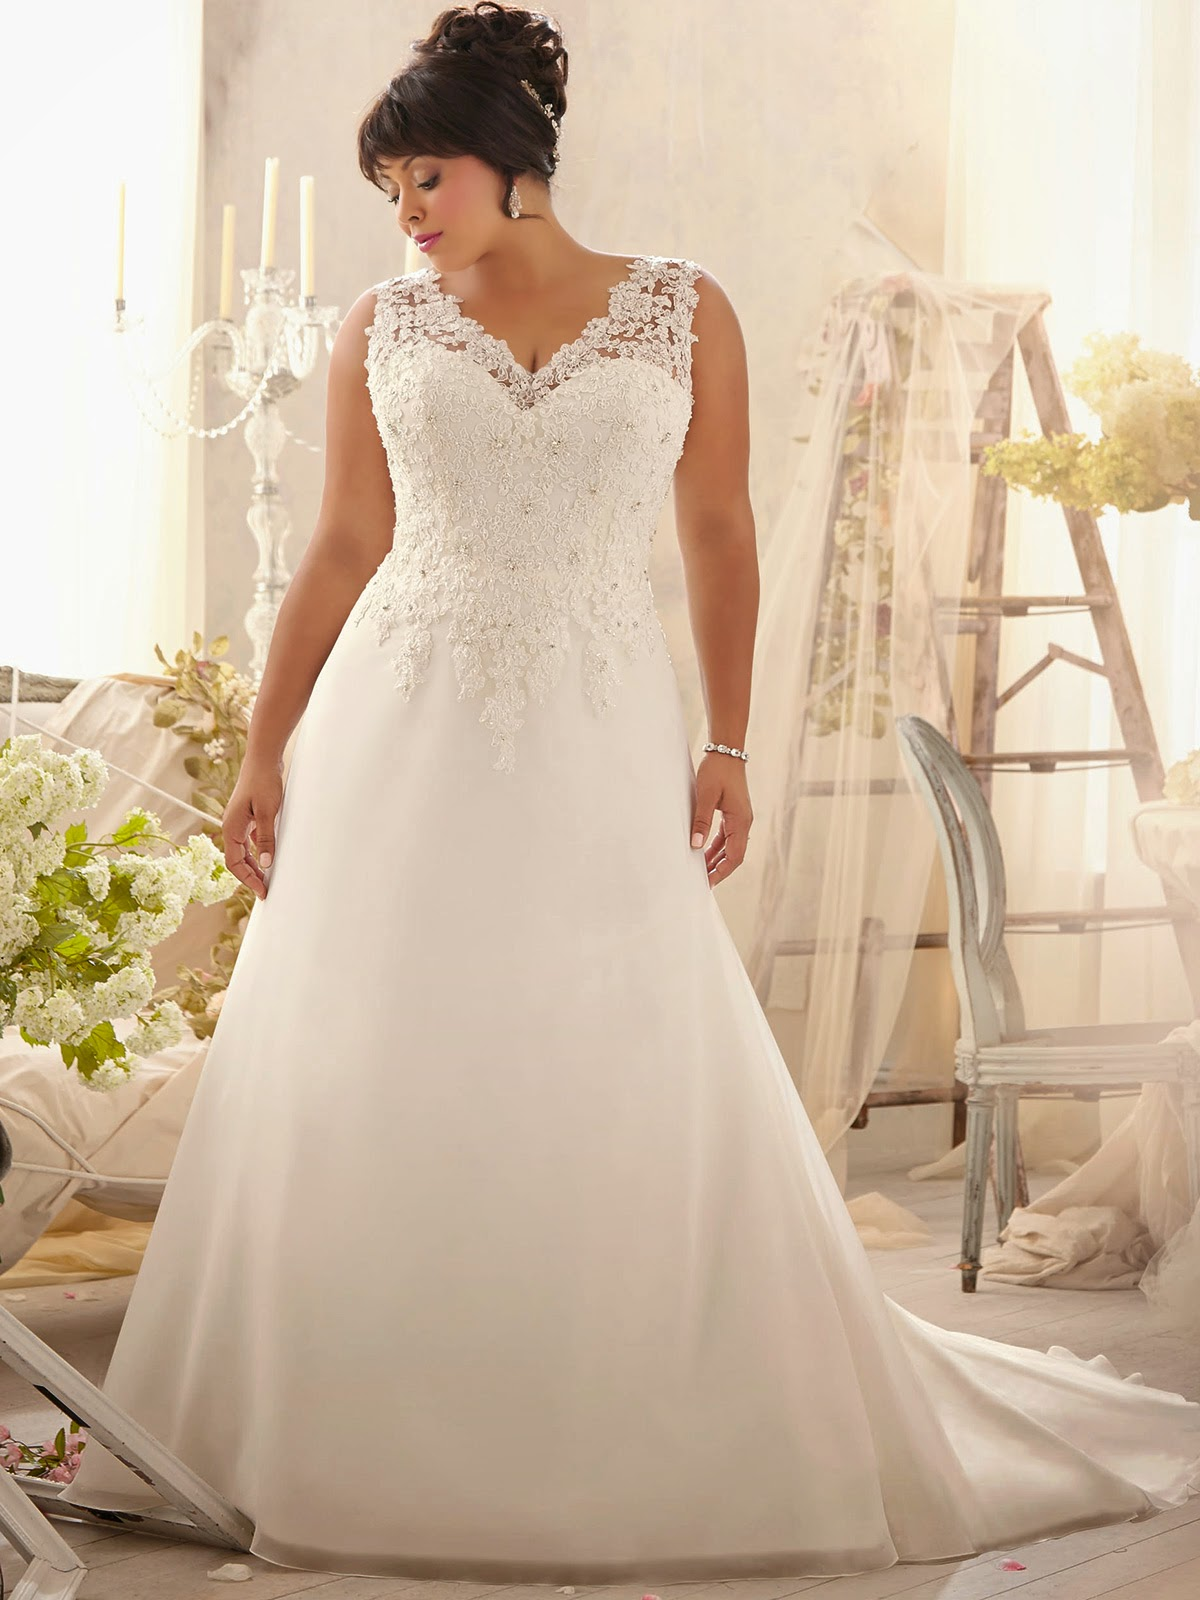 Wedding Dresses Pictures For Plus Sizes - Wedding Dresses In Jax